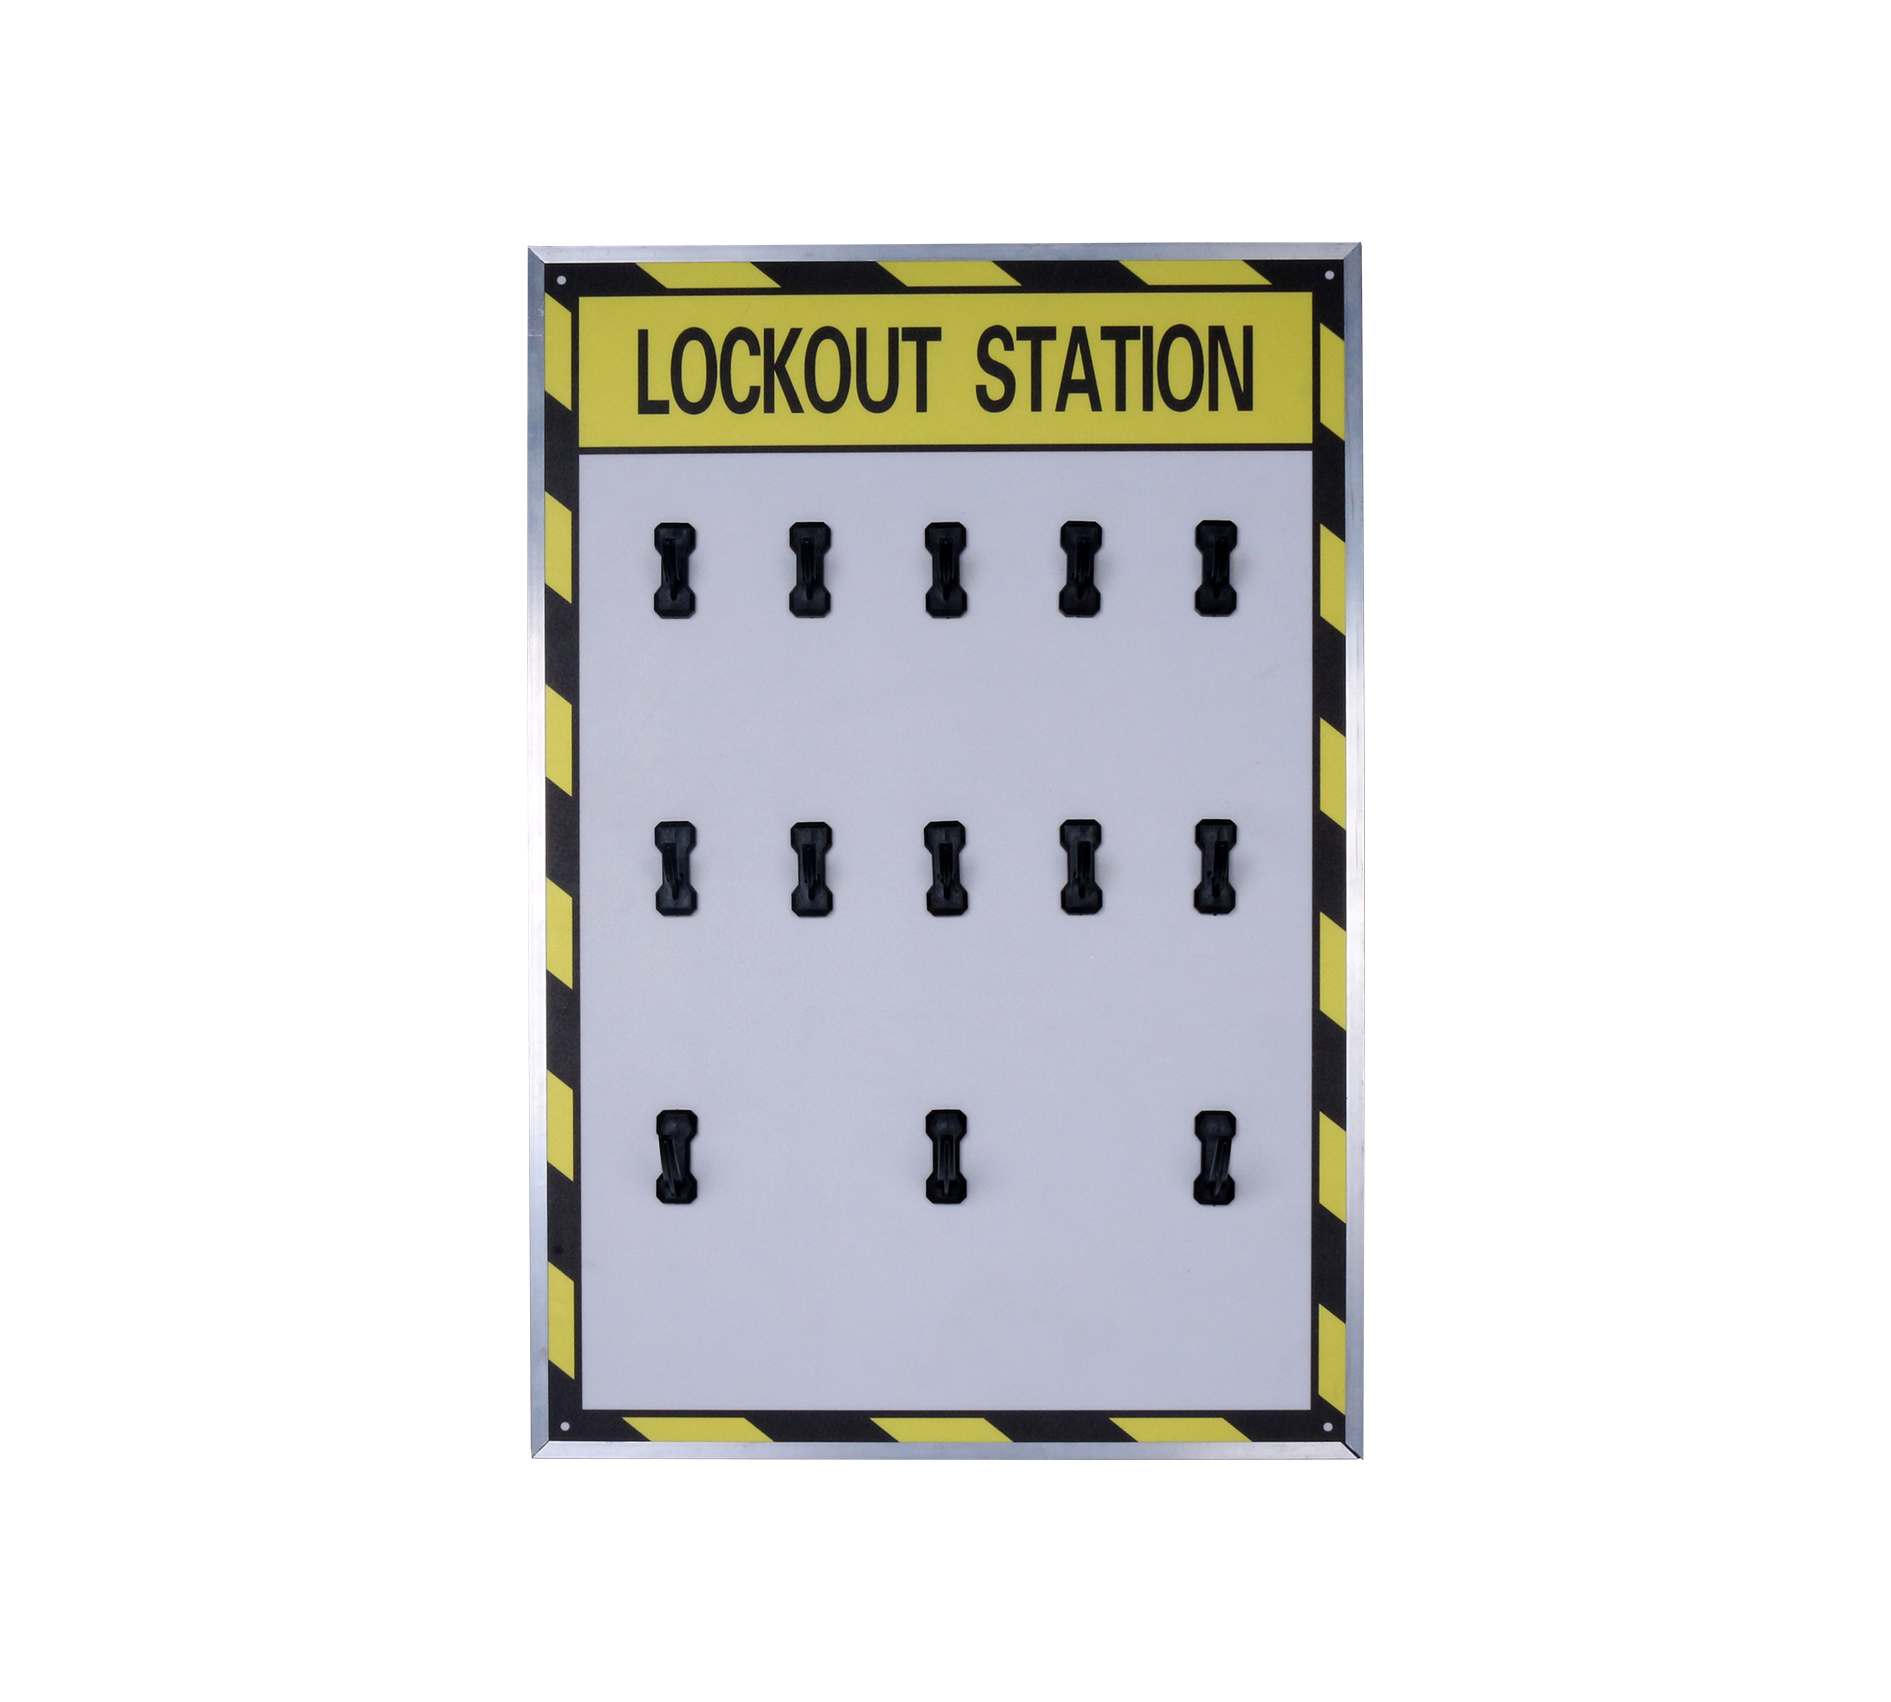 10 lock lockout station only Lockout, Station, Locker